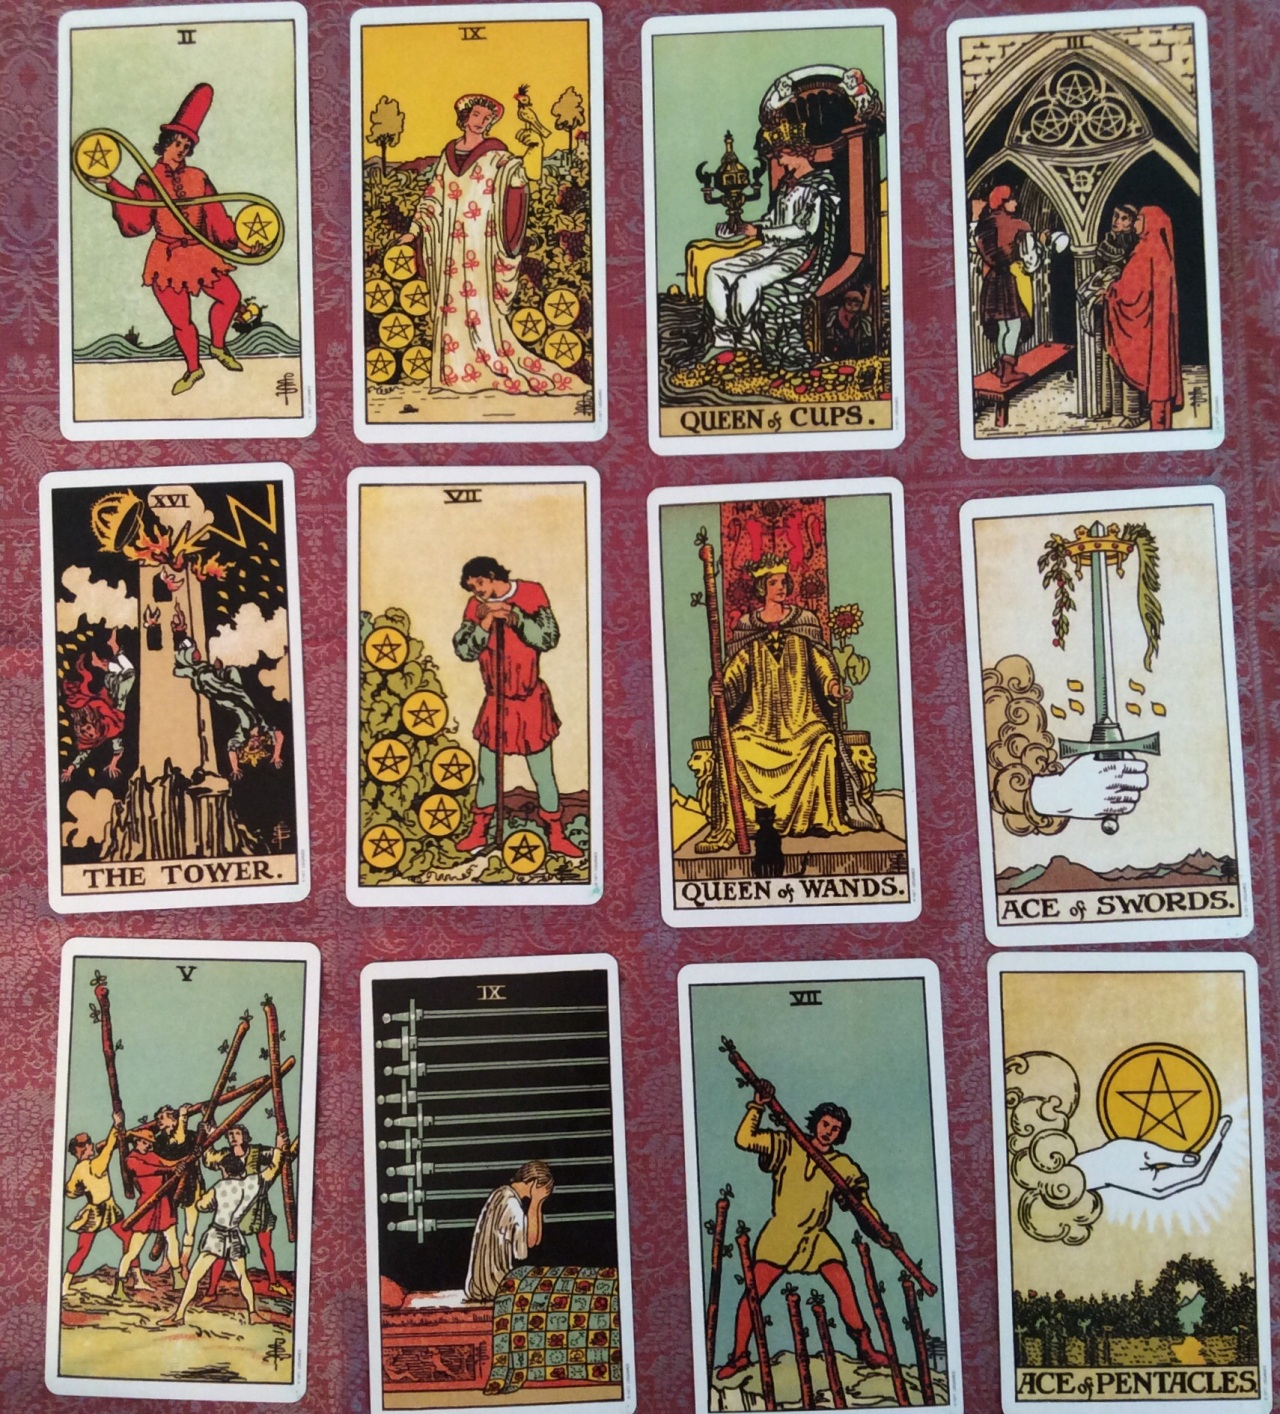 Weekly Tarot Theme Aug 24 to Aug 30 as per SunSIgn